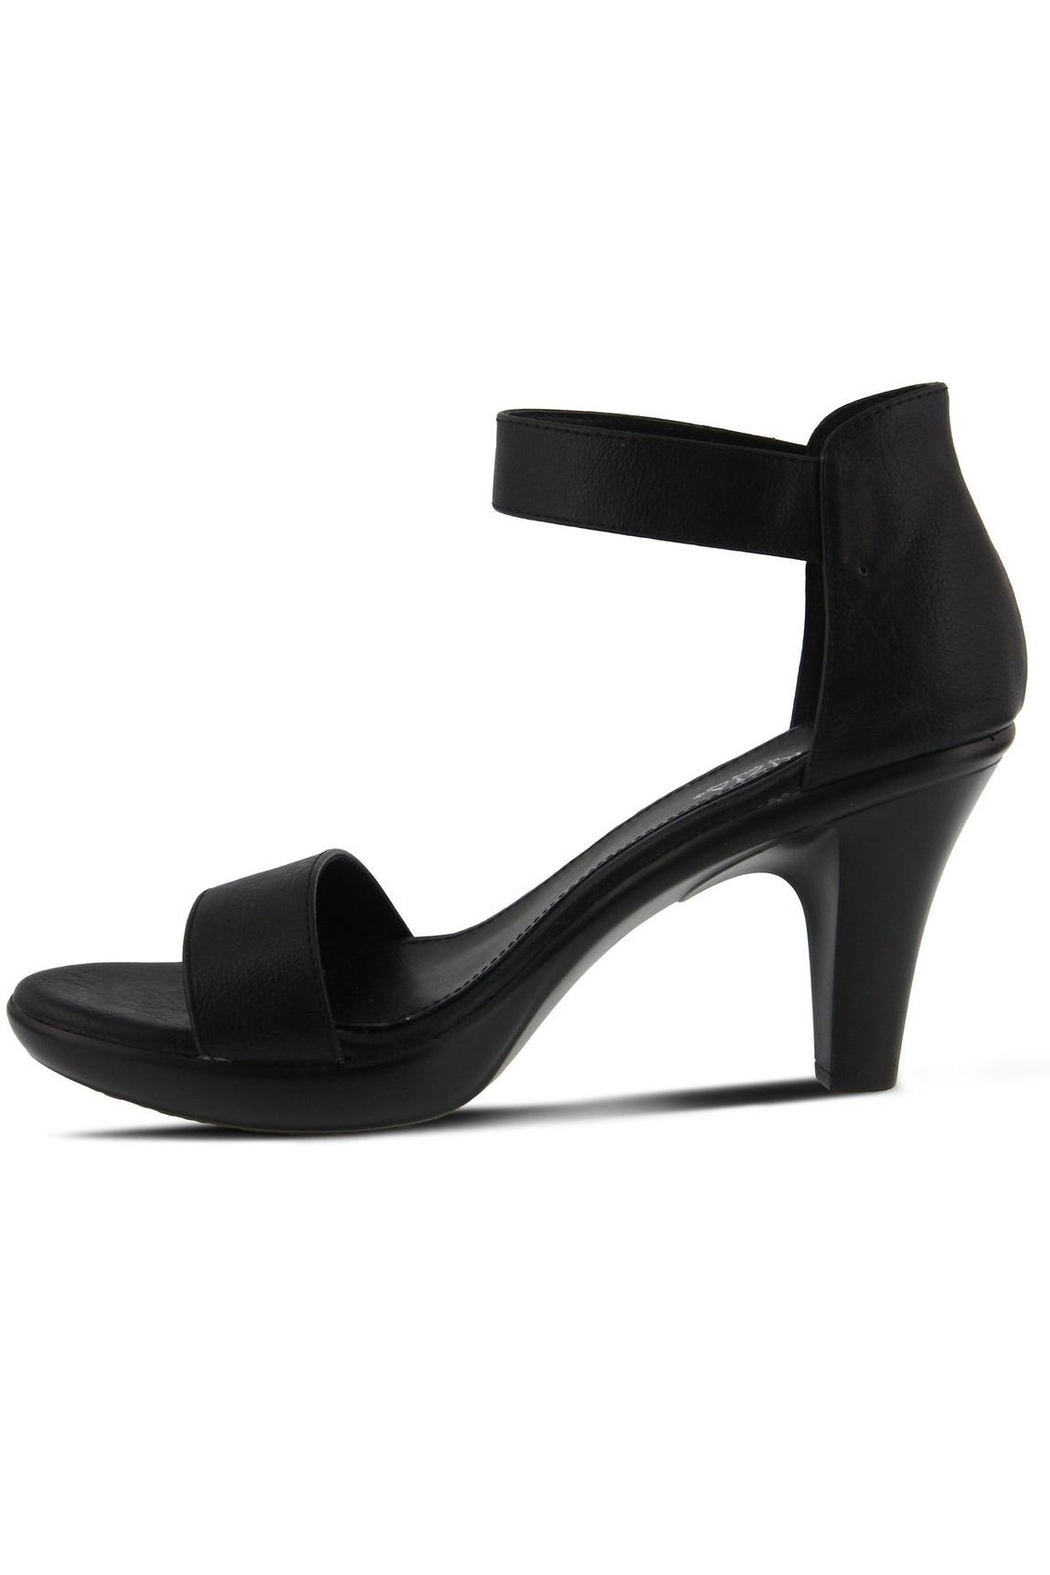 Spring Footwear Perfect Little-Black-Dress Heel - Front Full Image